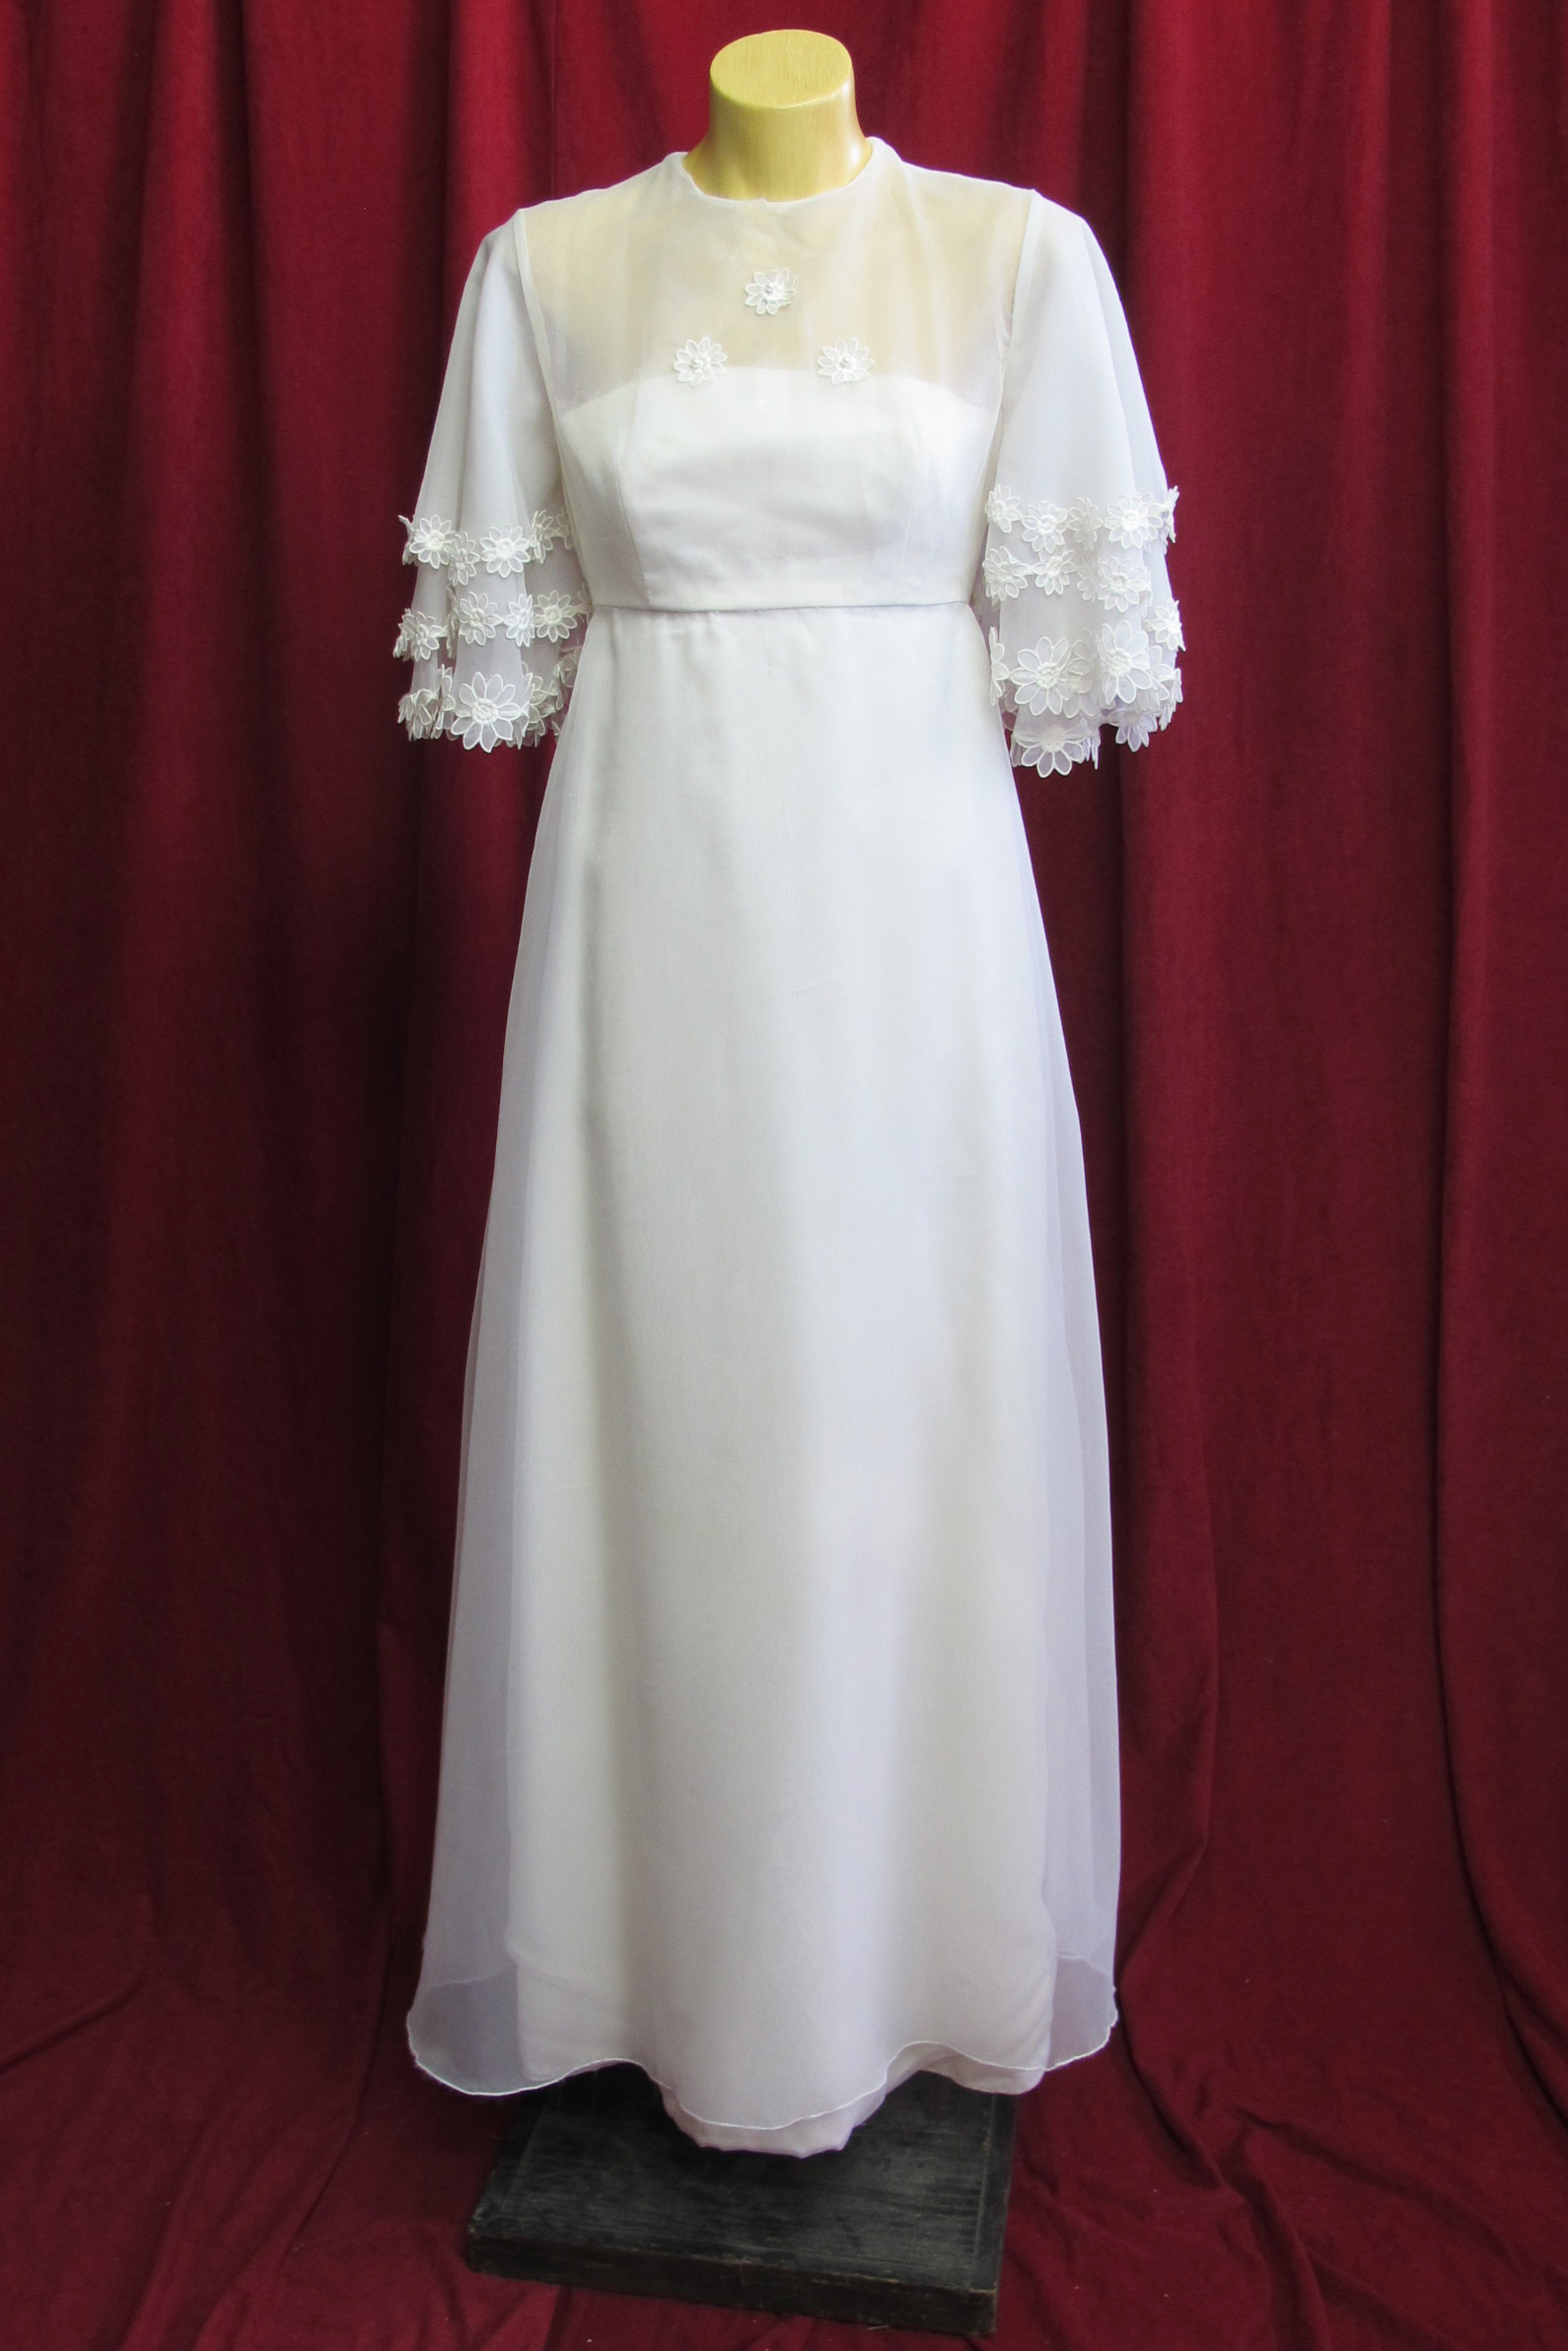 Wedding Dress 1960s High Neck Flower Detail sz.8 45320144